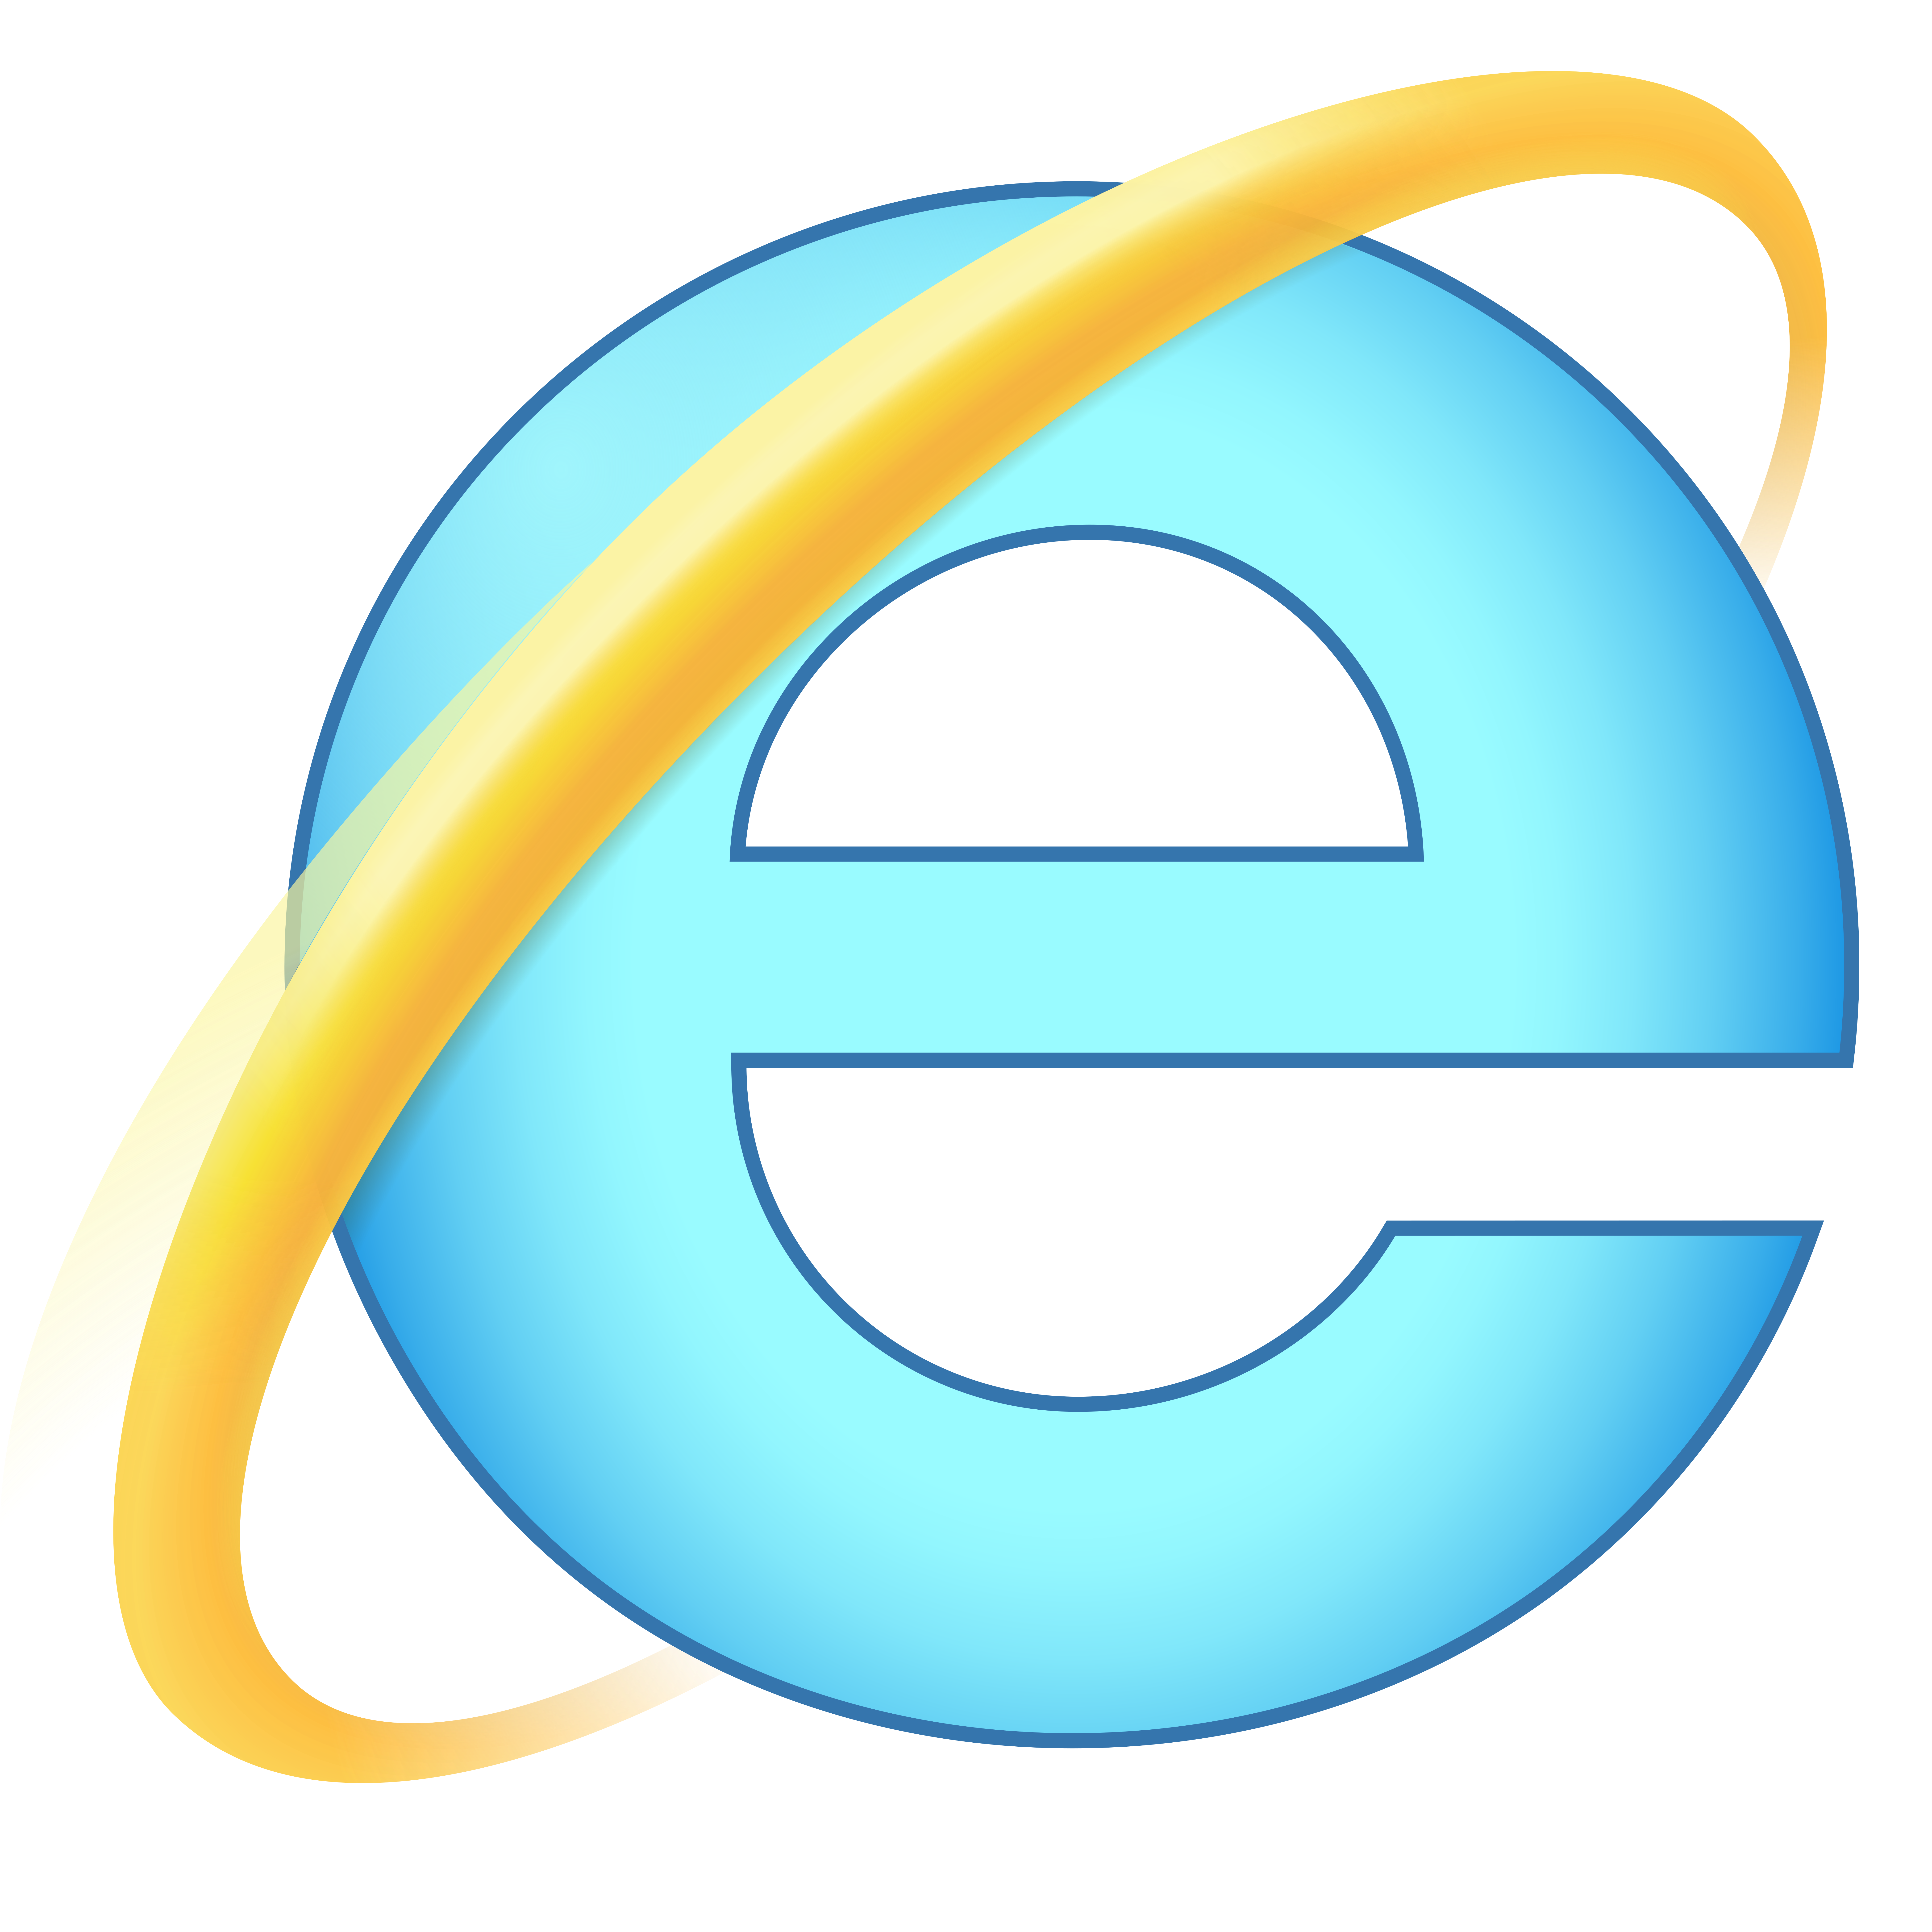 File:Internet Explorer 10+11 computer icon.png